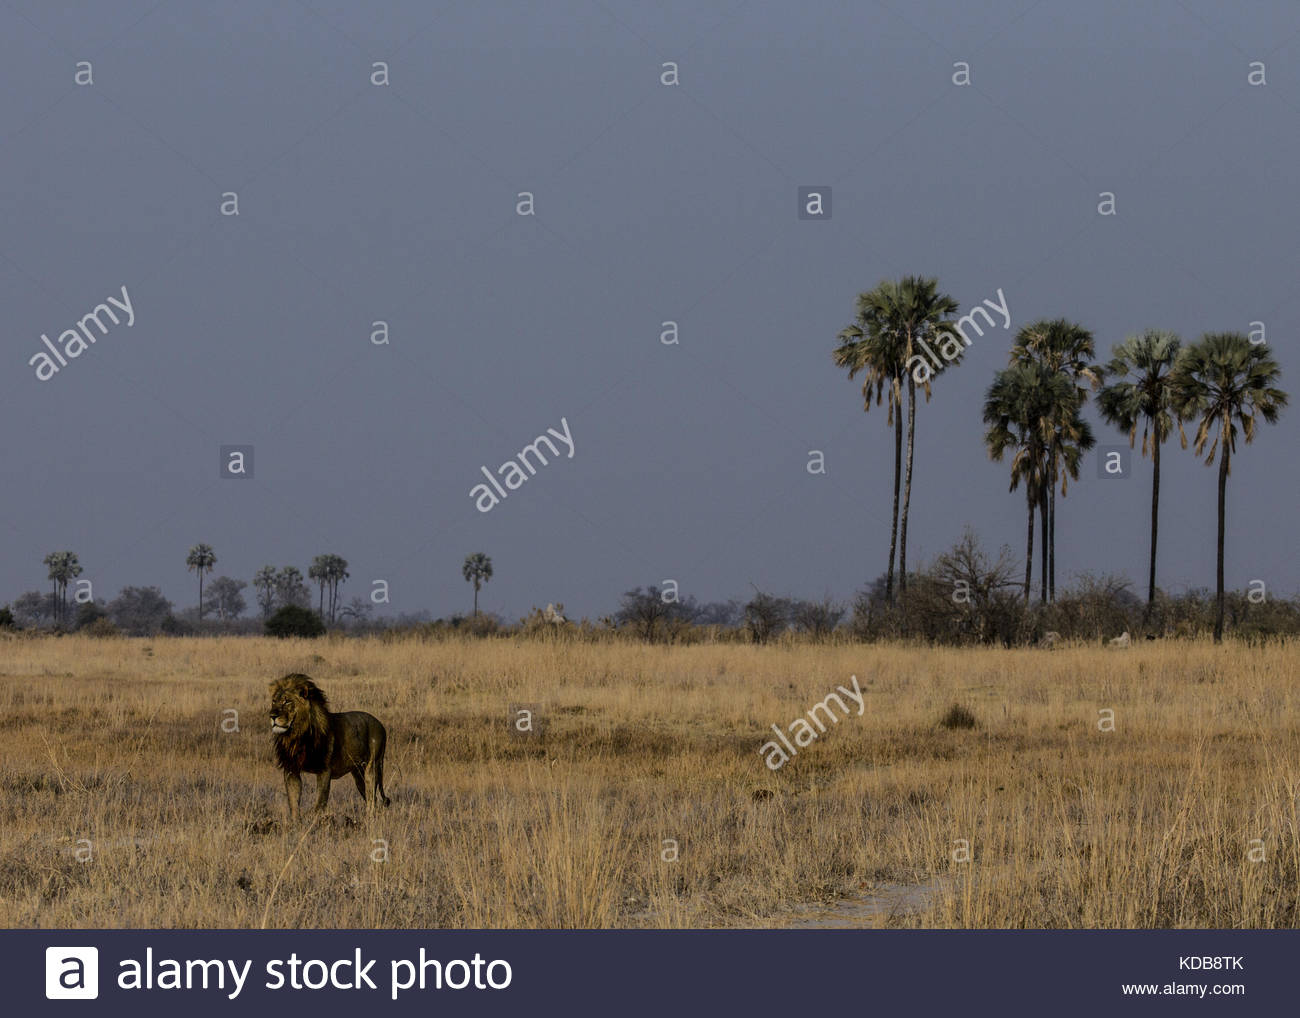 A lion, Panthera leo, stands in the dry grass and surveys the area. - Stock Image